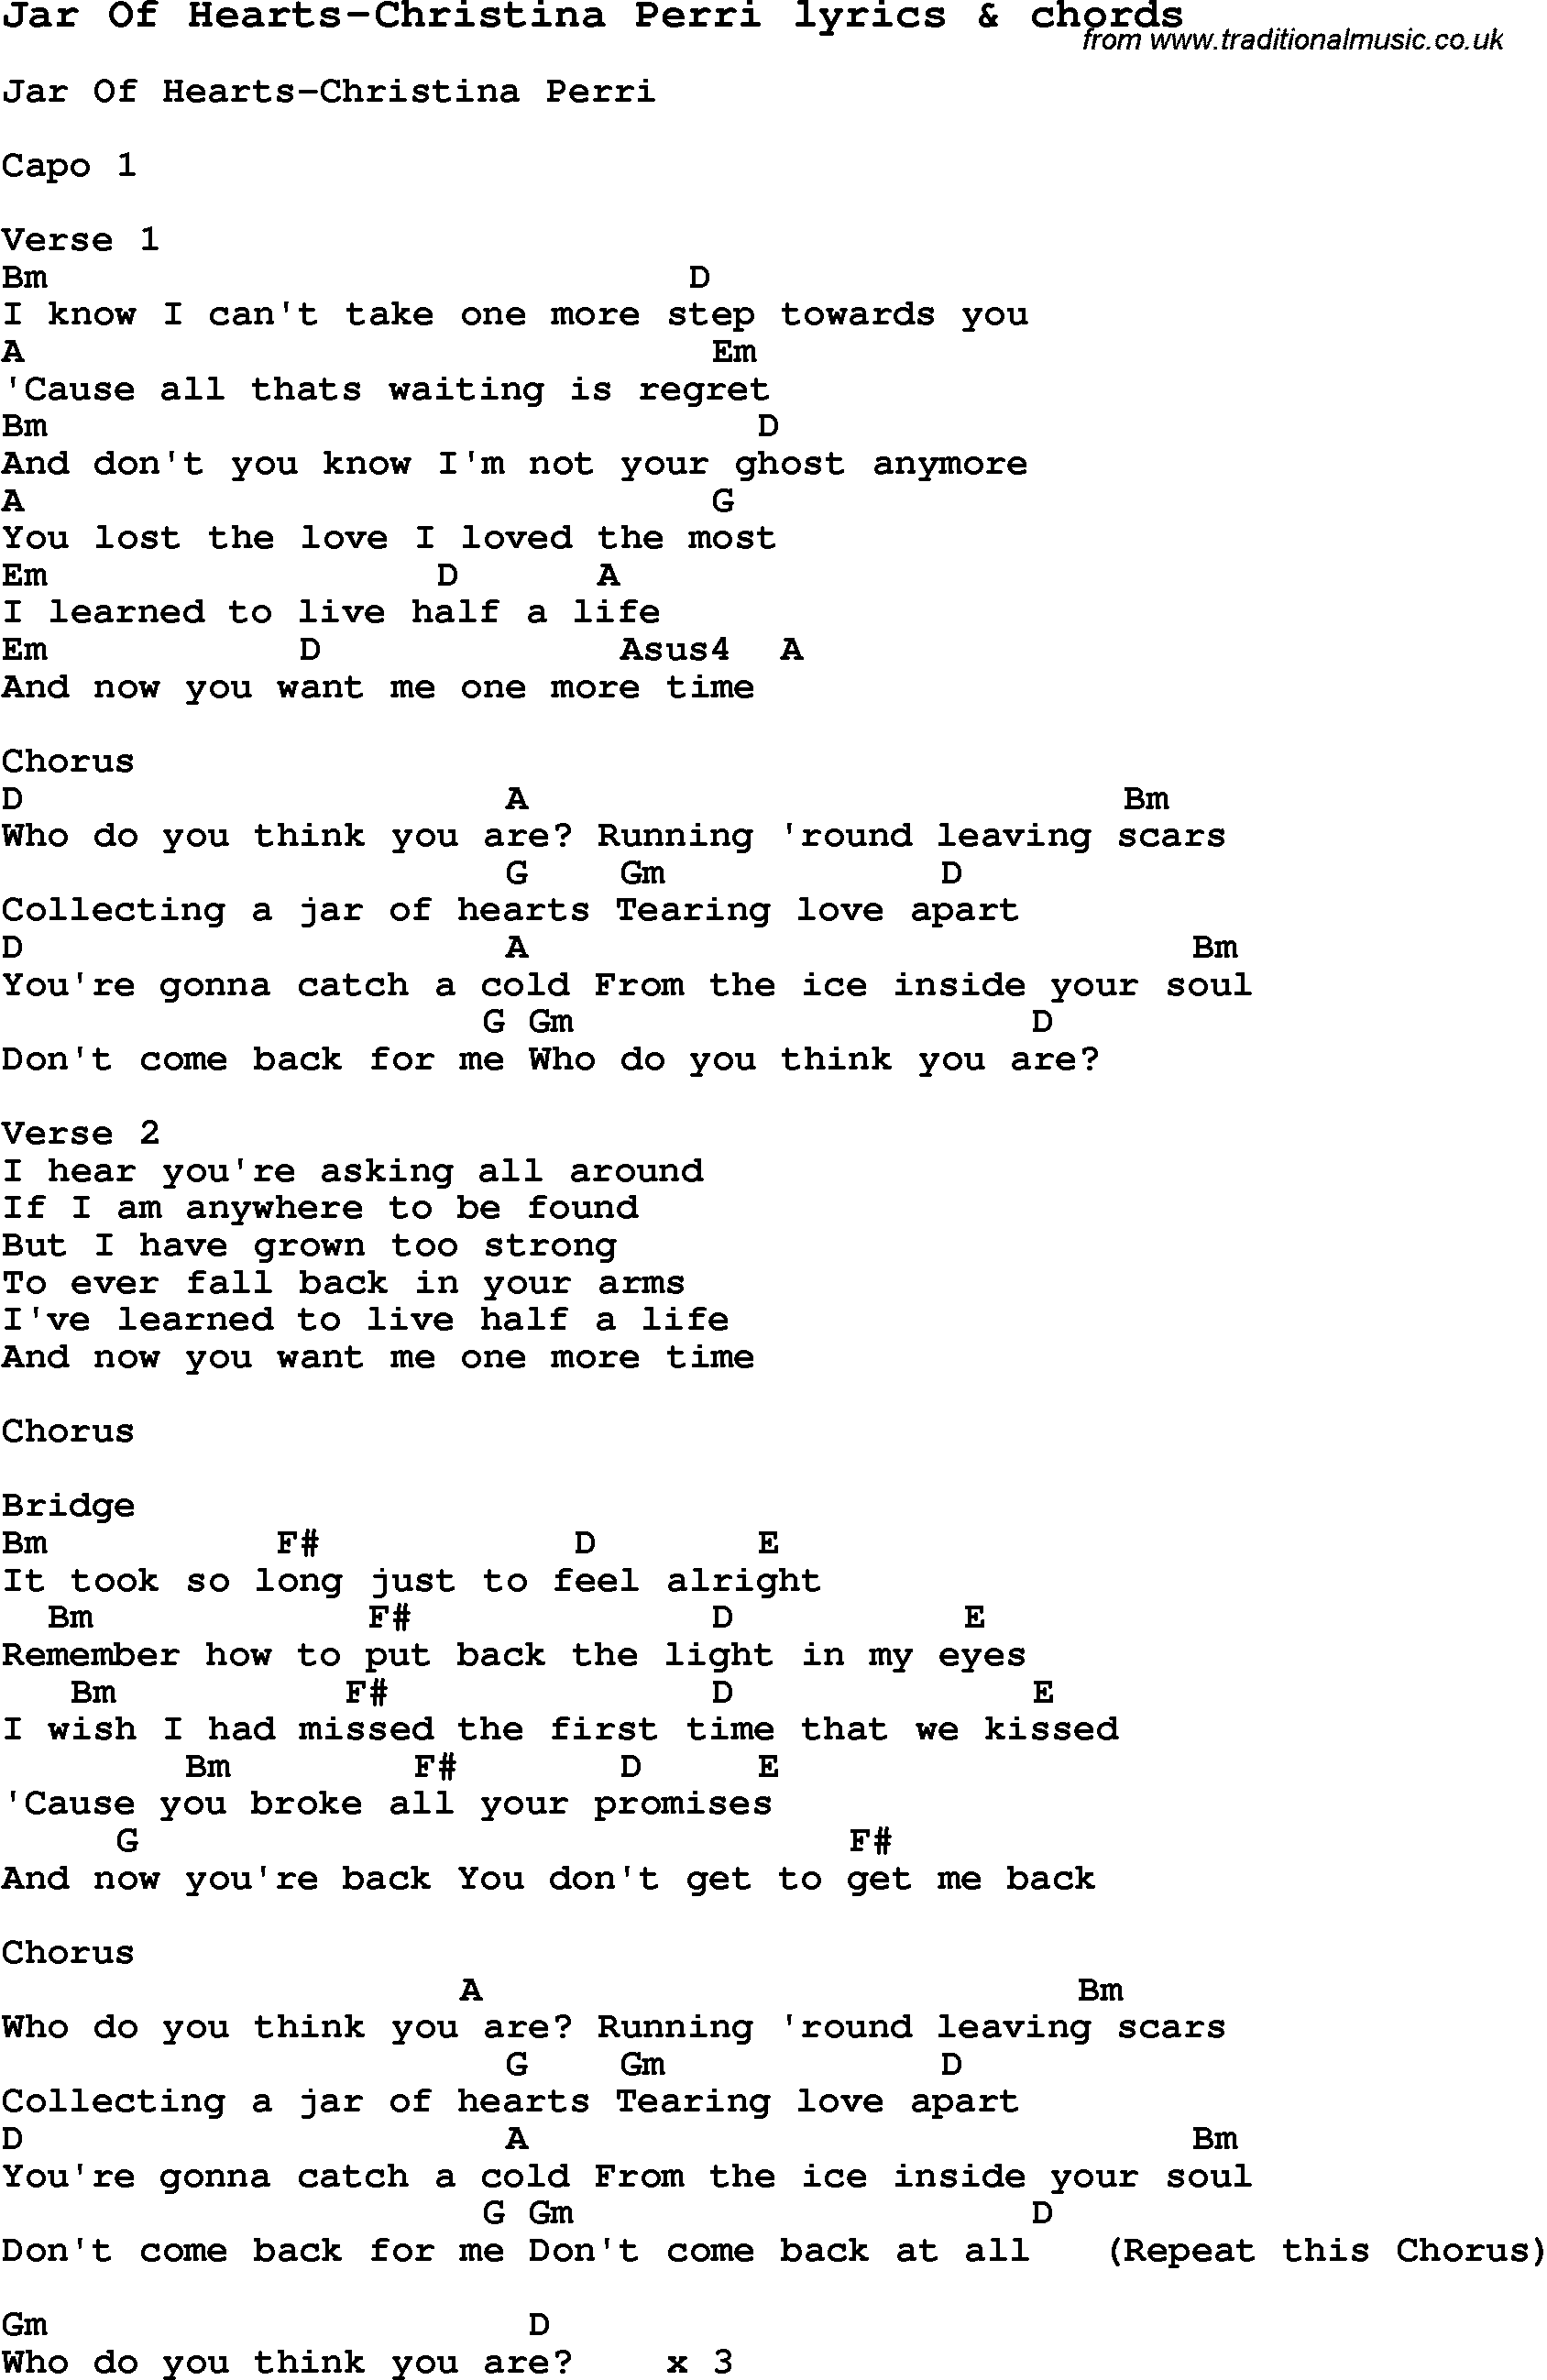 Love Song Lyrics For Jar Of Hearts Christina Perri With Chords For